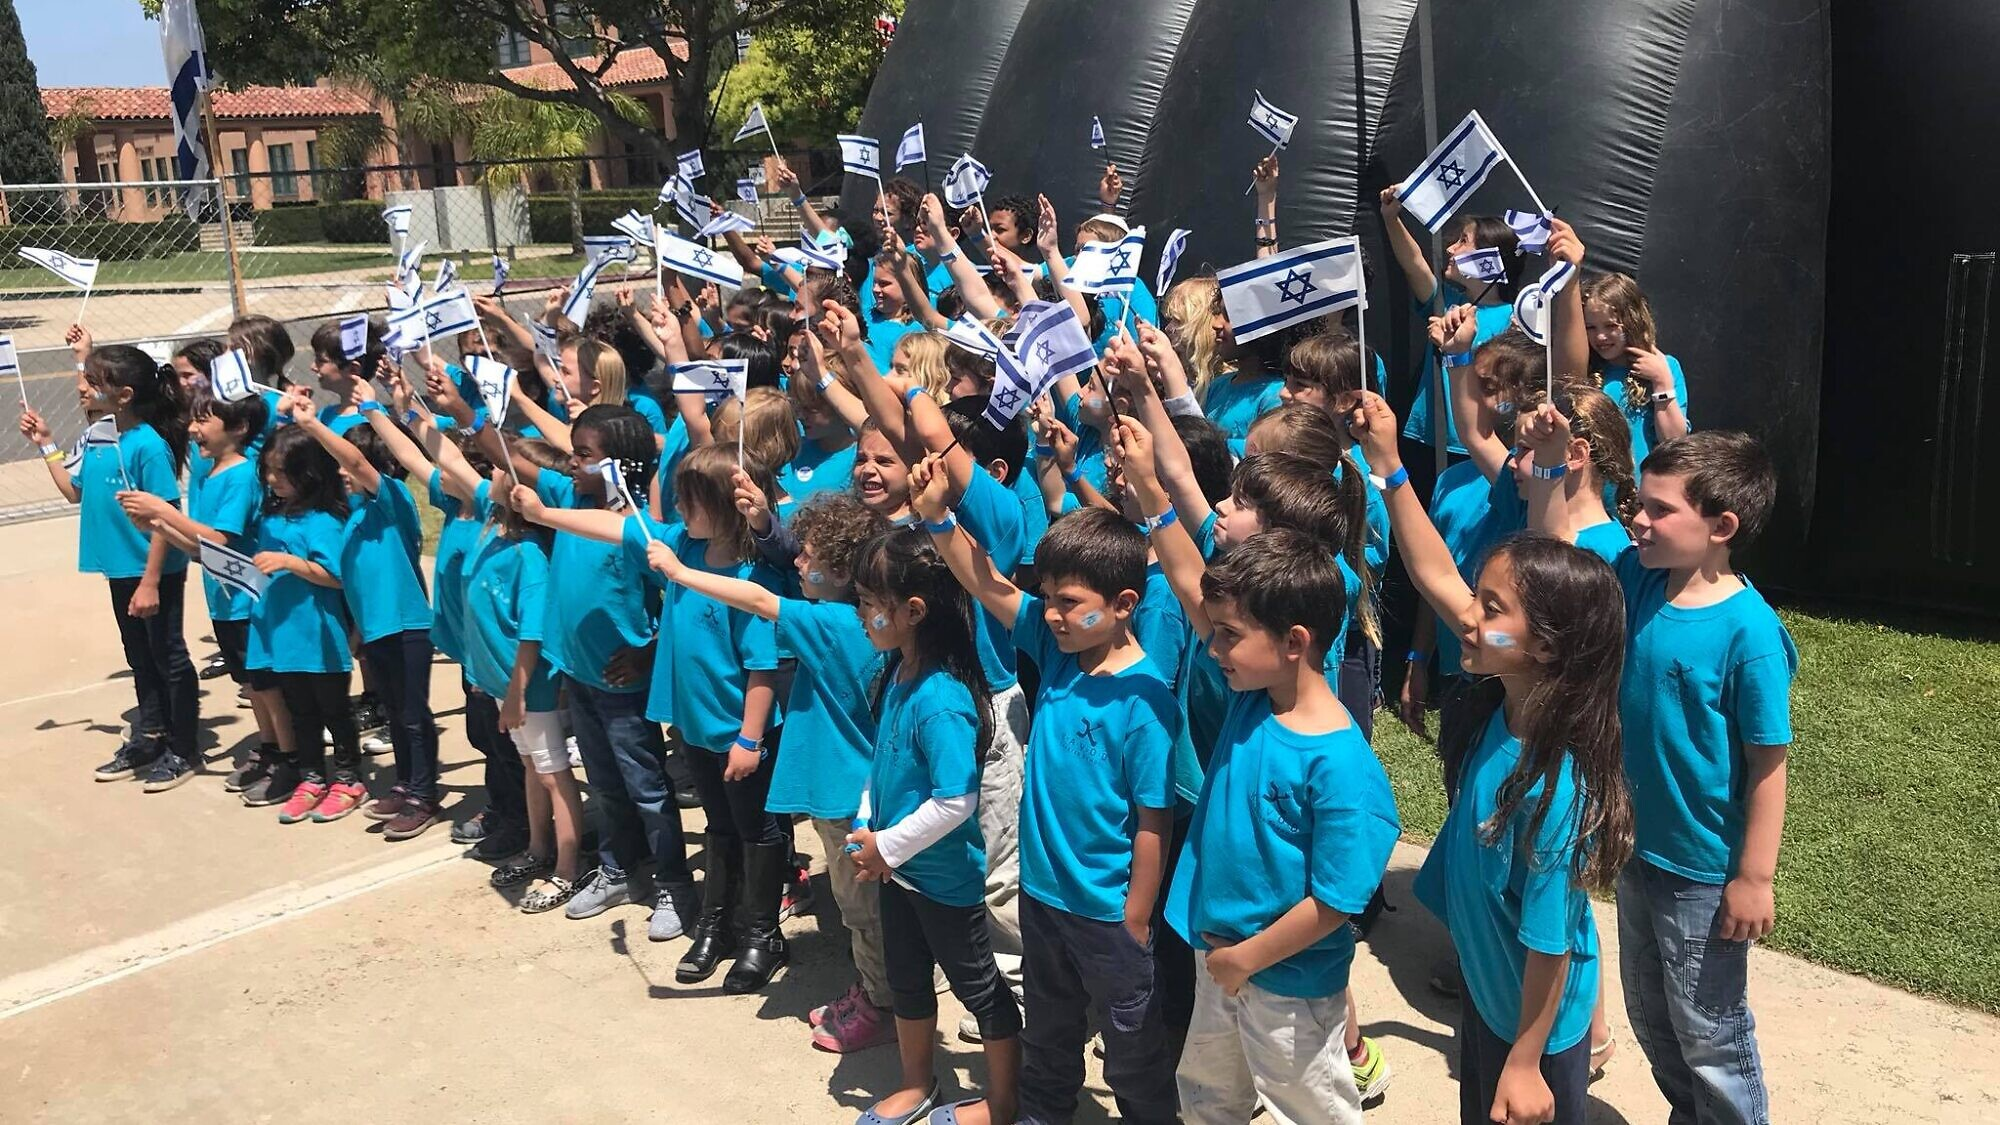 Children at the Kavod Charter School in San Diego. While math, reading and writing are taught in English, much of the rest of the school day—from morning meeting to art class to physical education and even recess are conducted in Hebrew. Source: Kavod Charter School via Twitter.